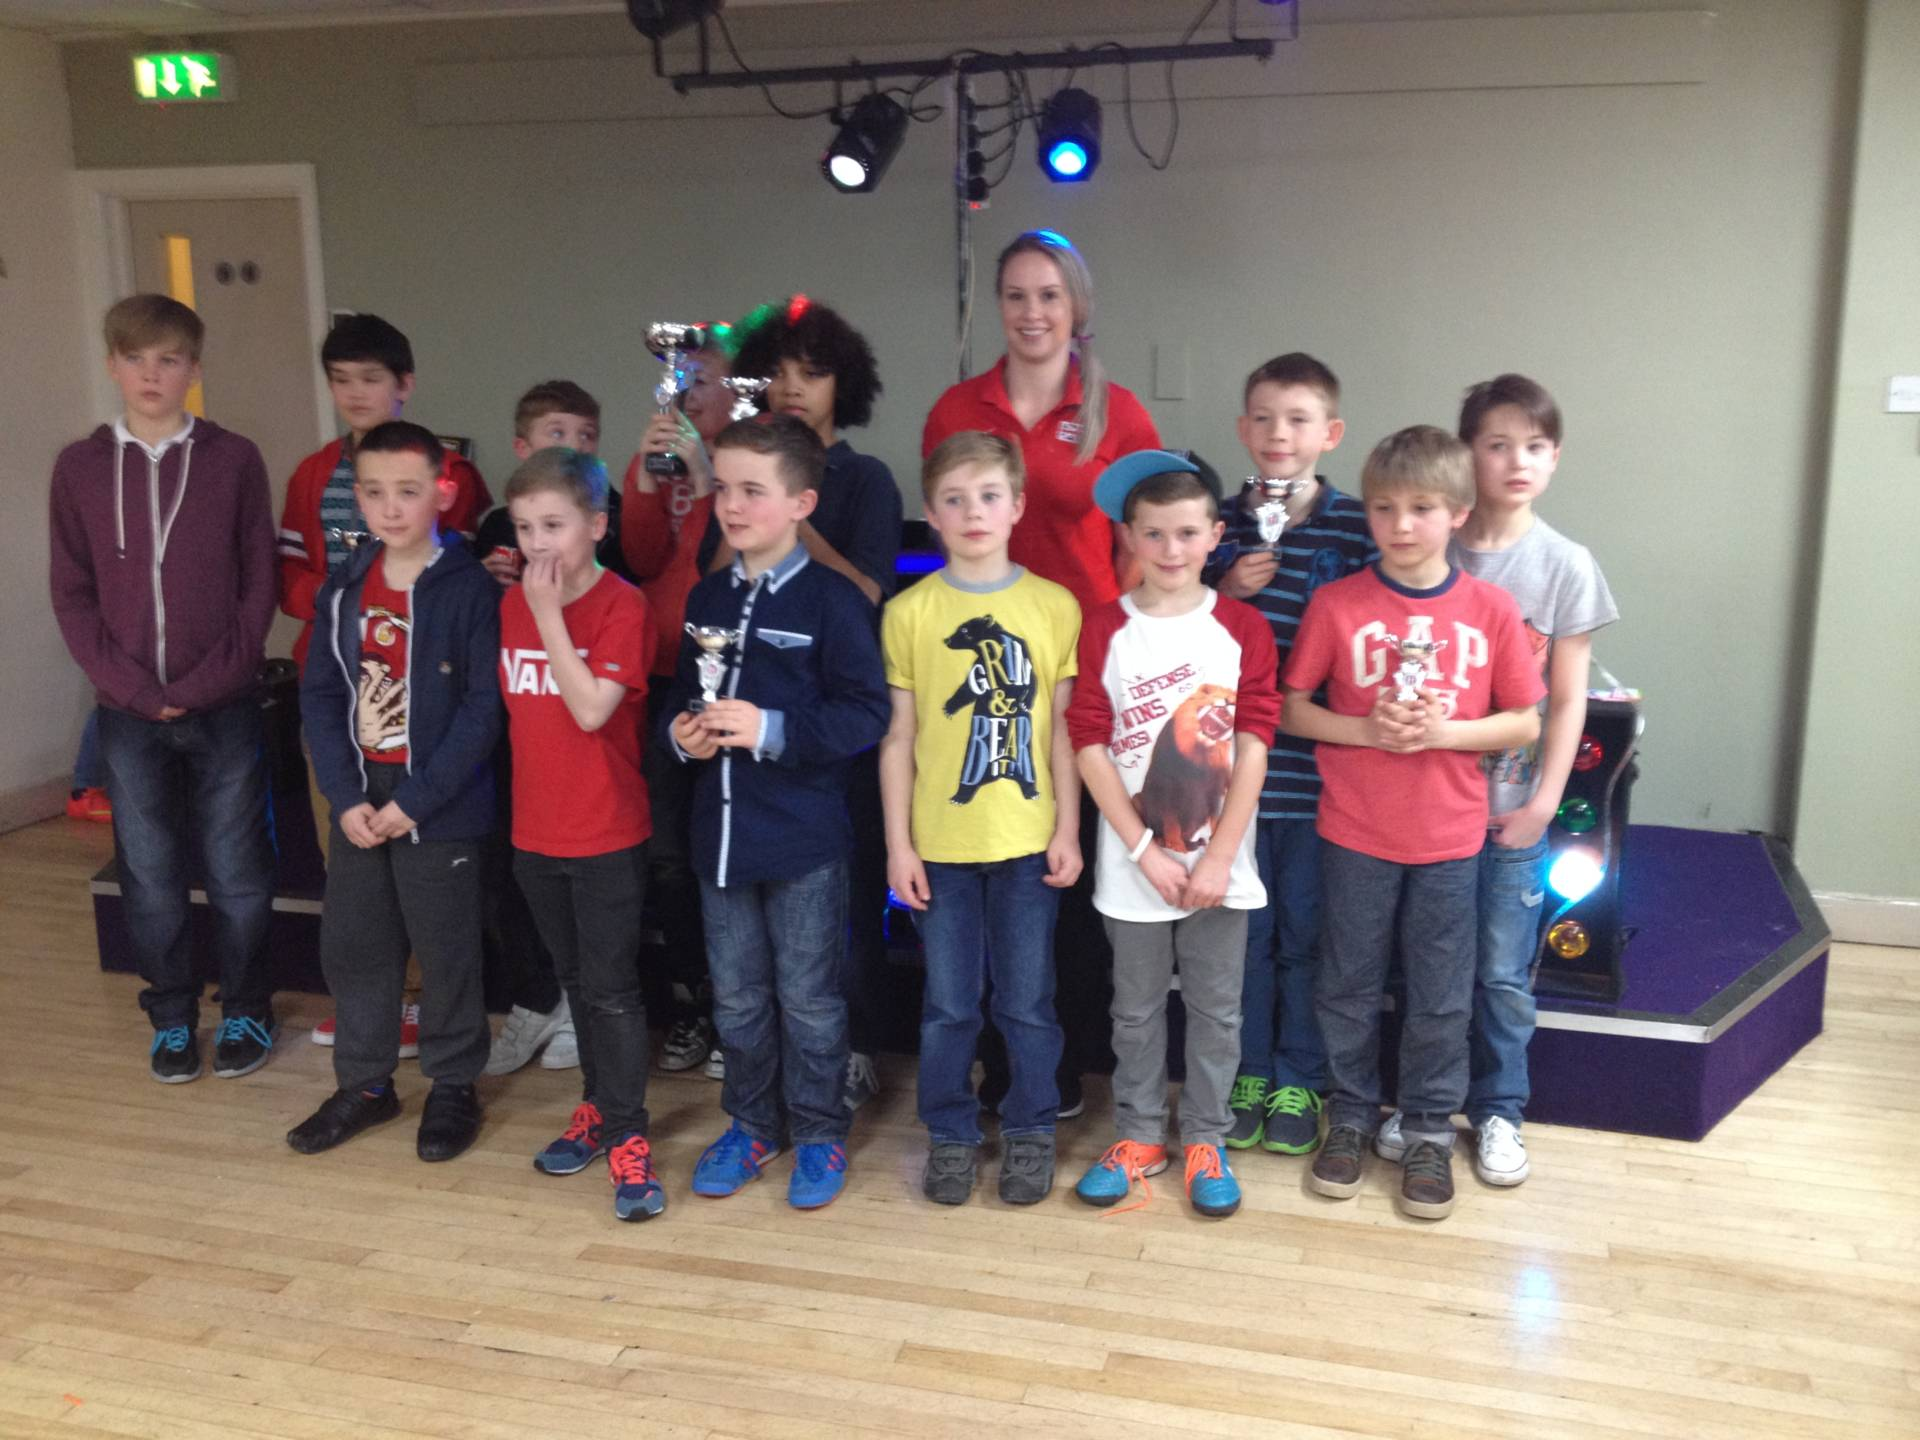 Sportshall Awards & Disco with Olympian Sophie Hitchon